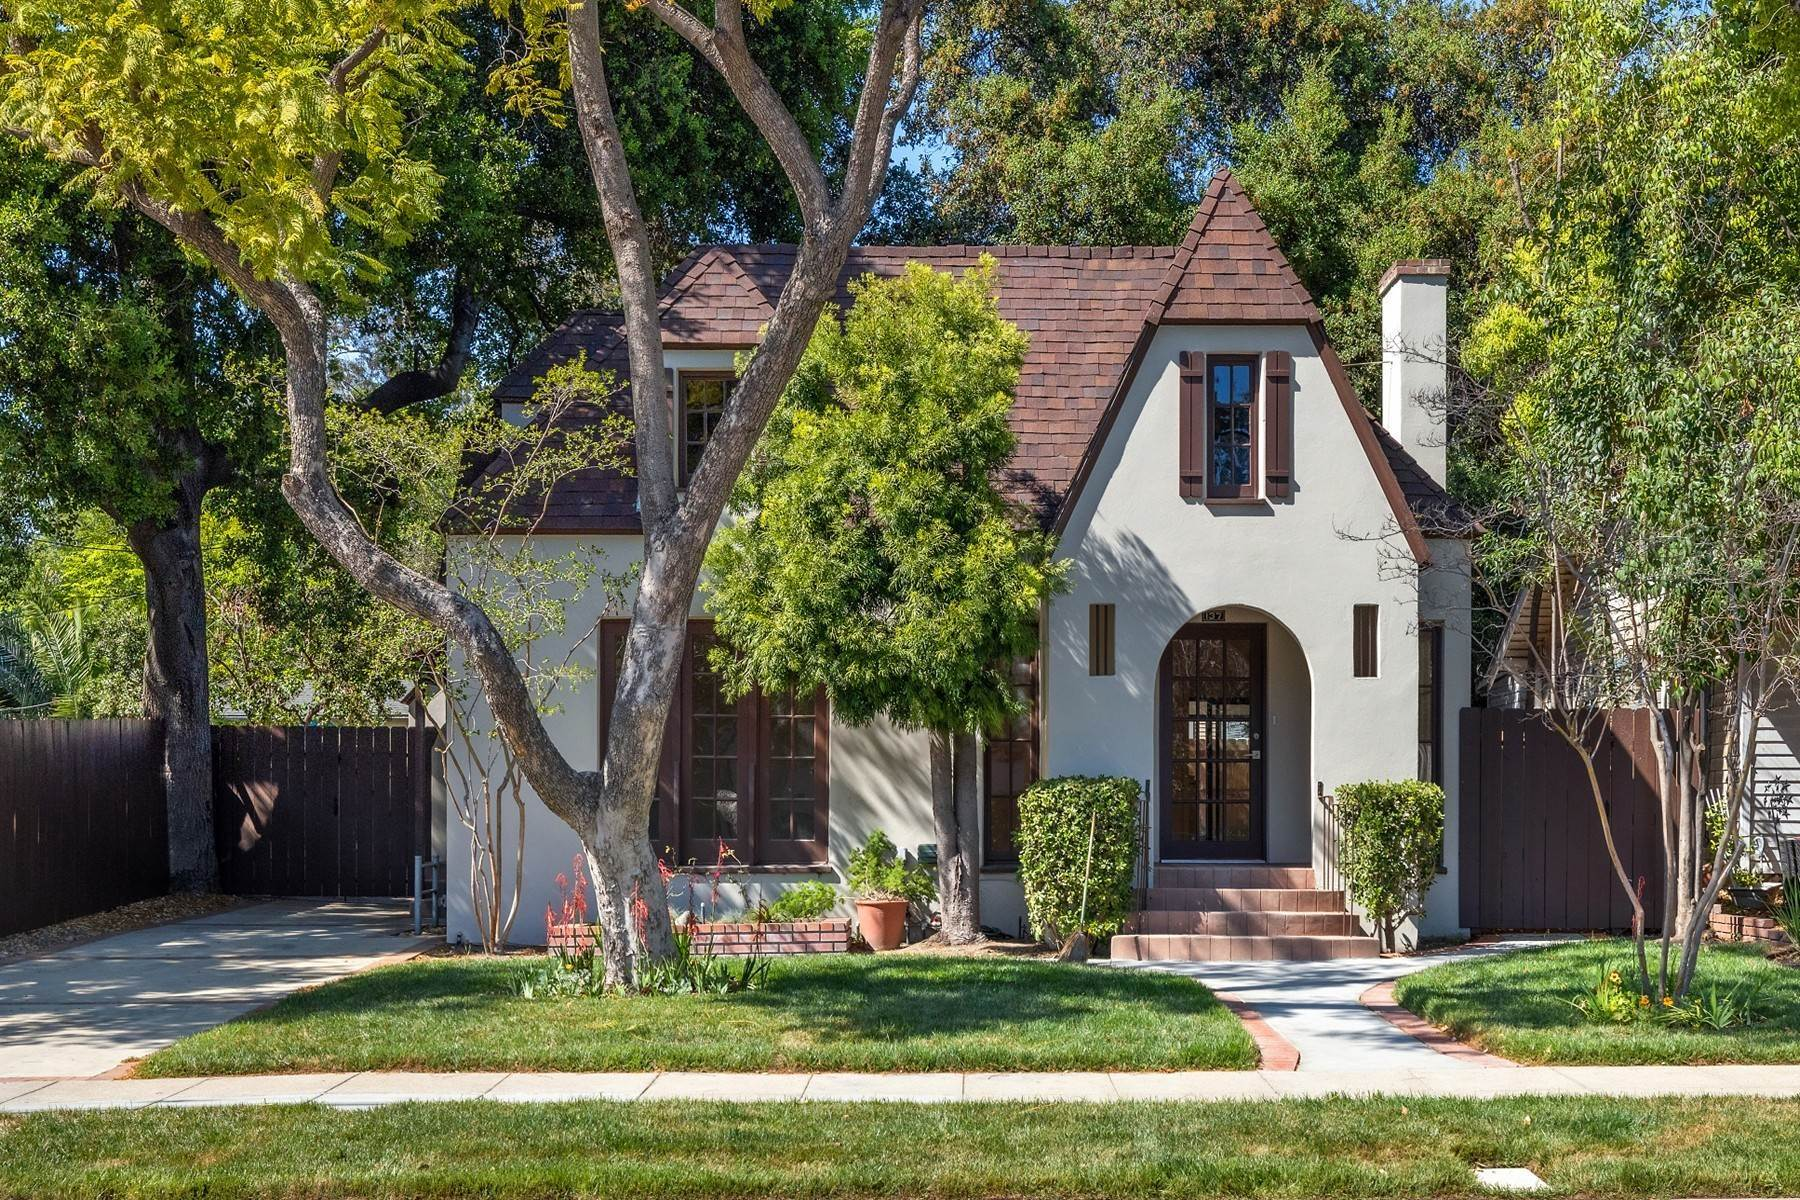 Single Family Homes for Sale at 137 W 8th Street, Claremont, CA 91711 137 W 8th Street Claremont, California 91711 United States